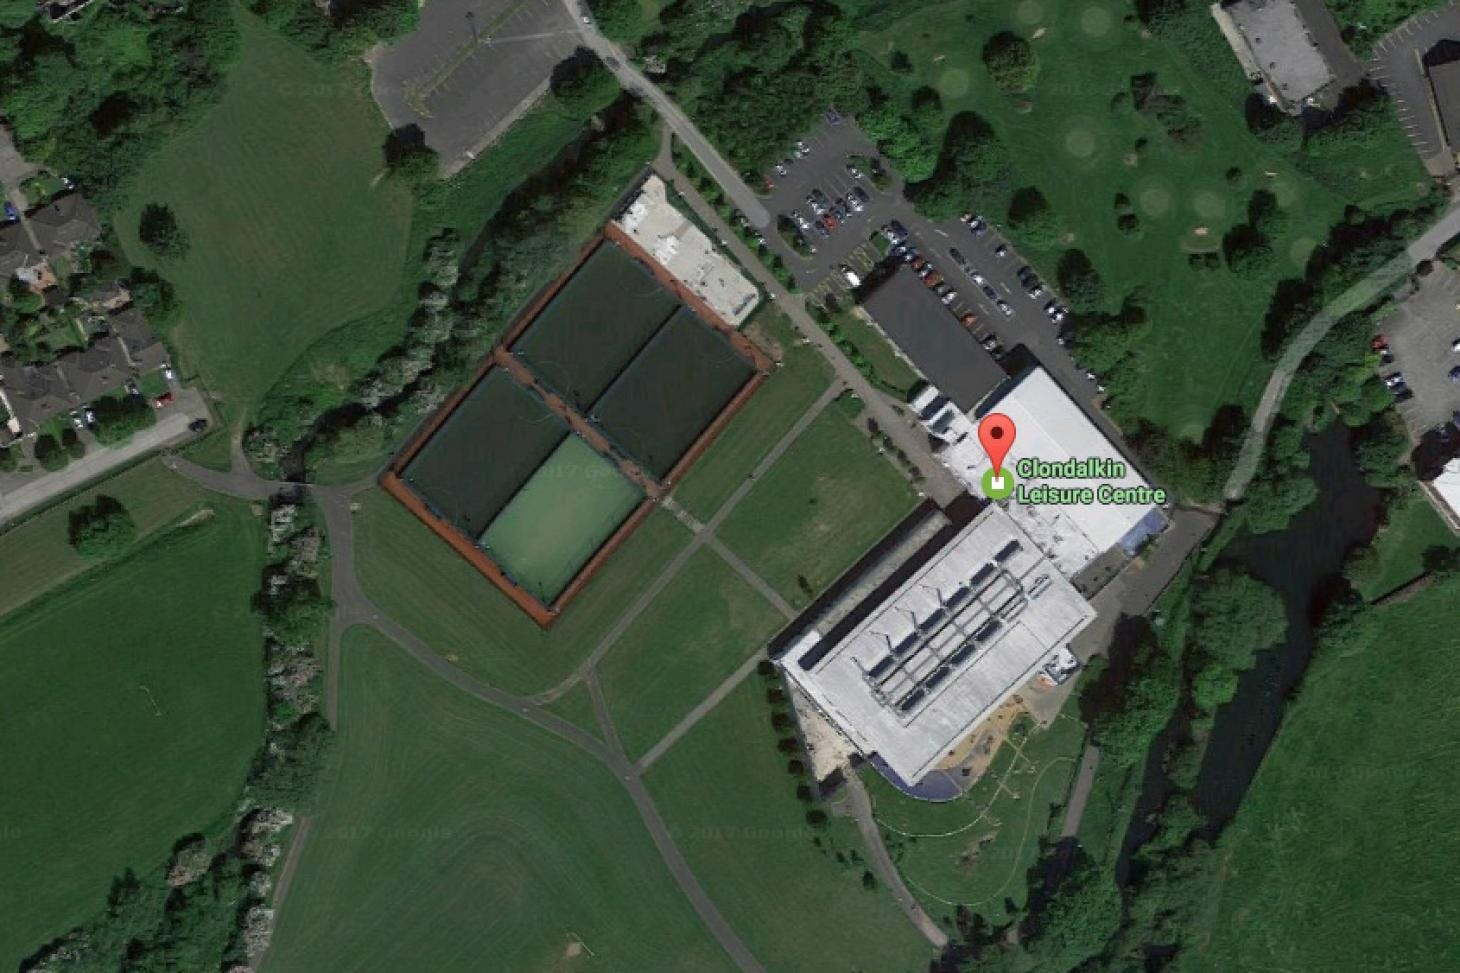 Clondalkin Leisure Centre Outdoor | Astroturf tennis court